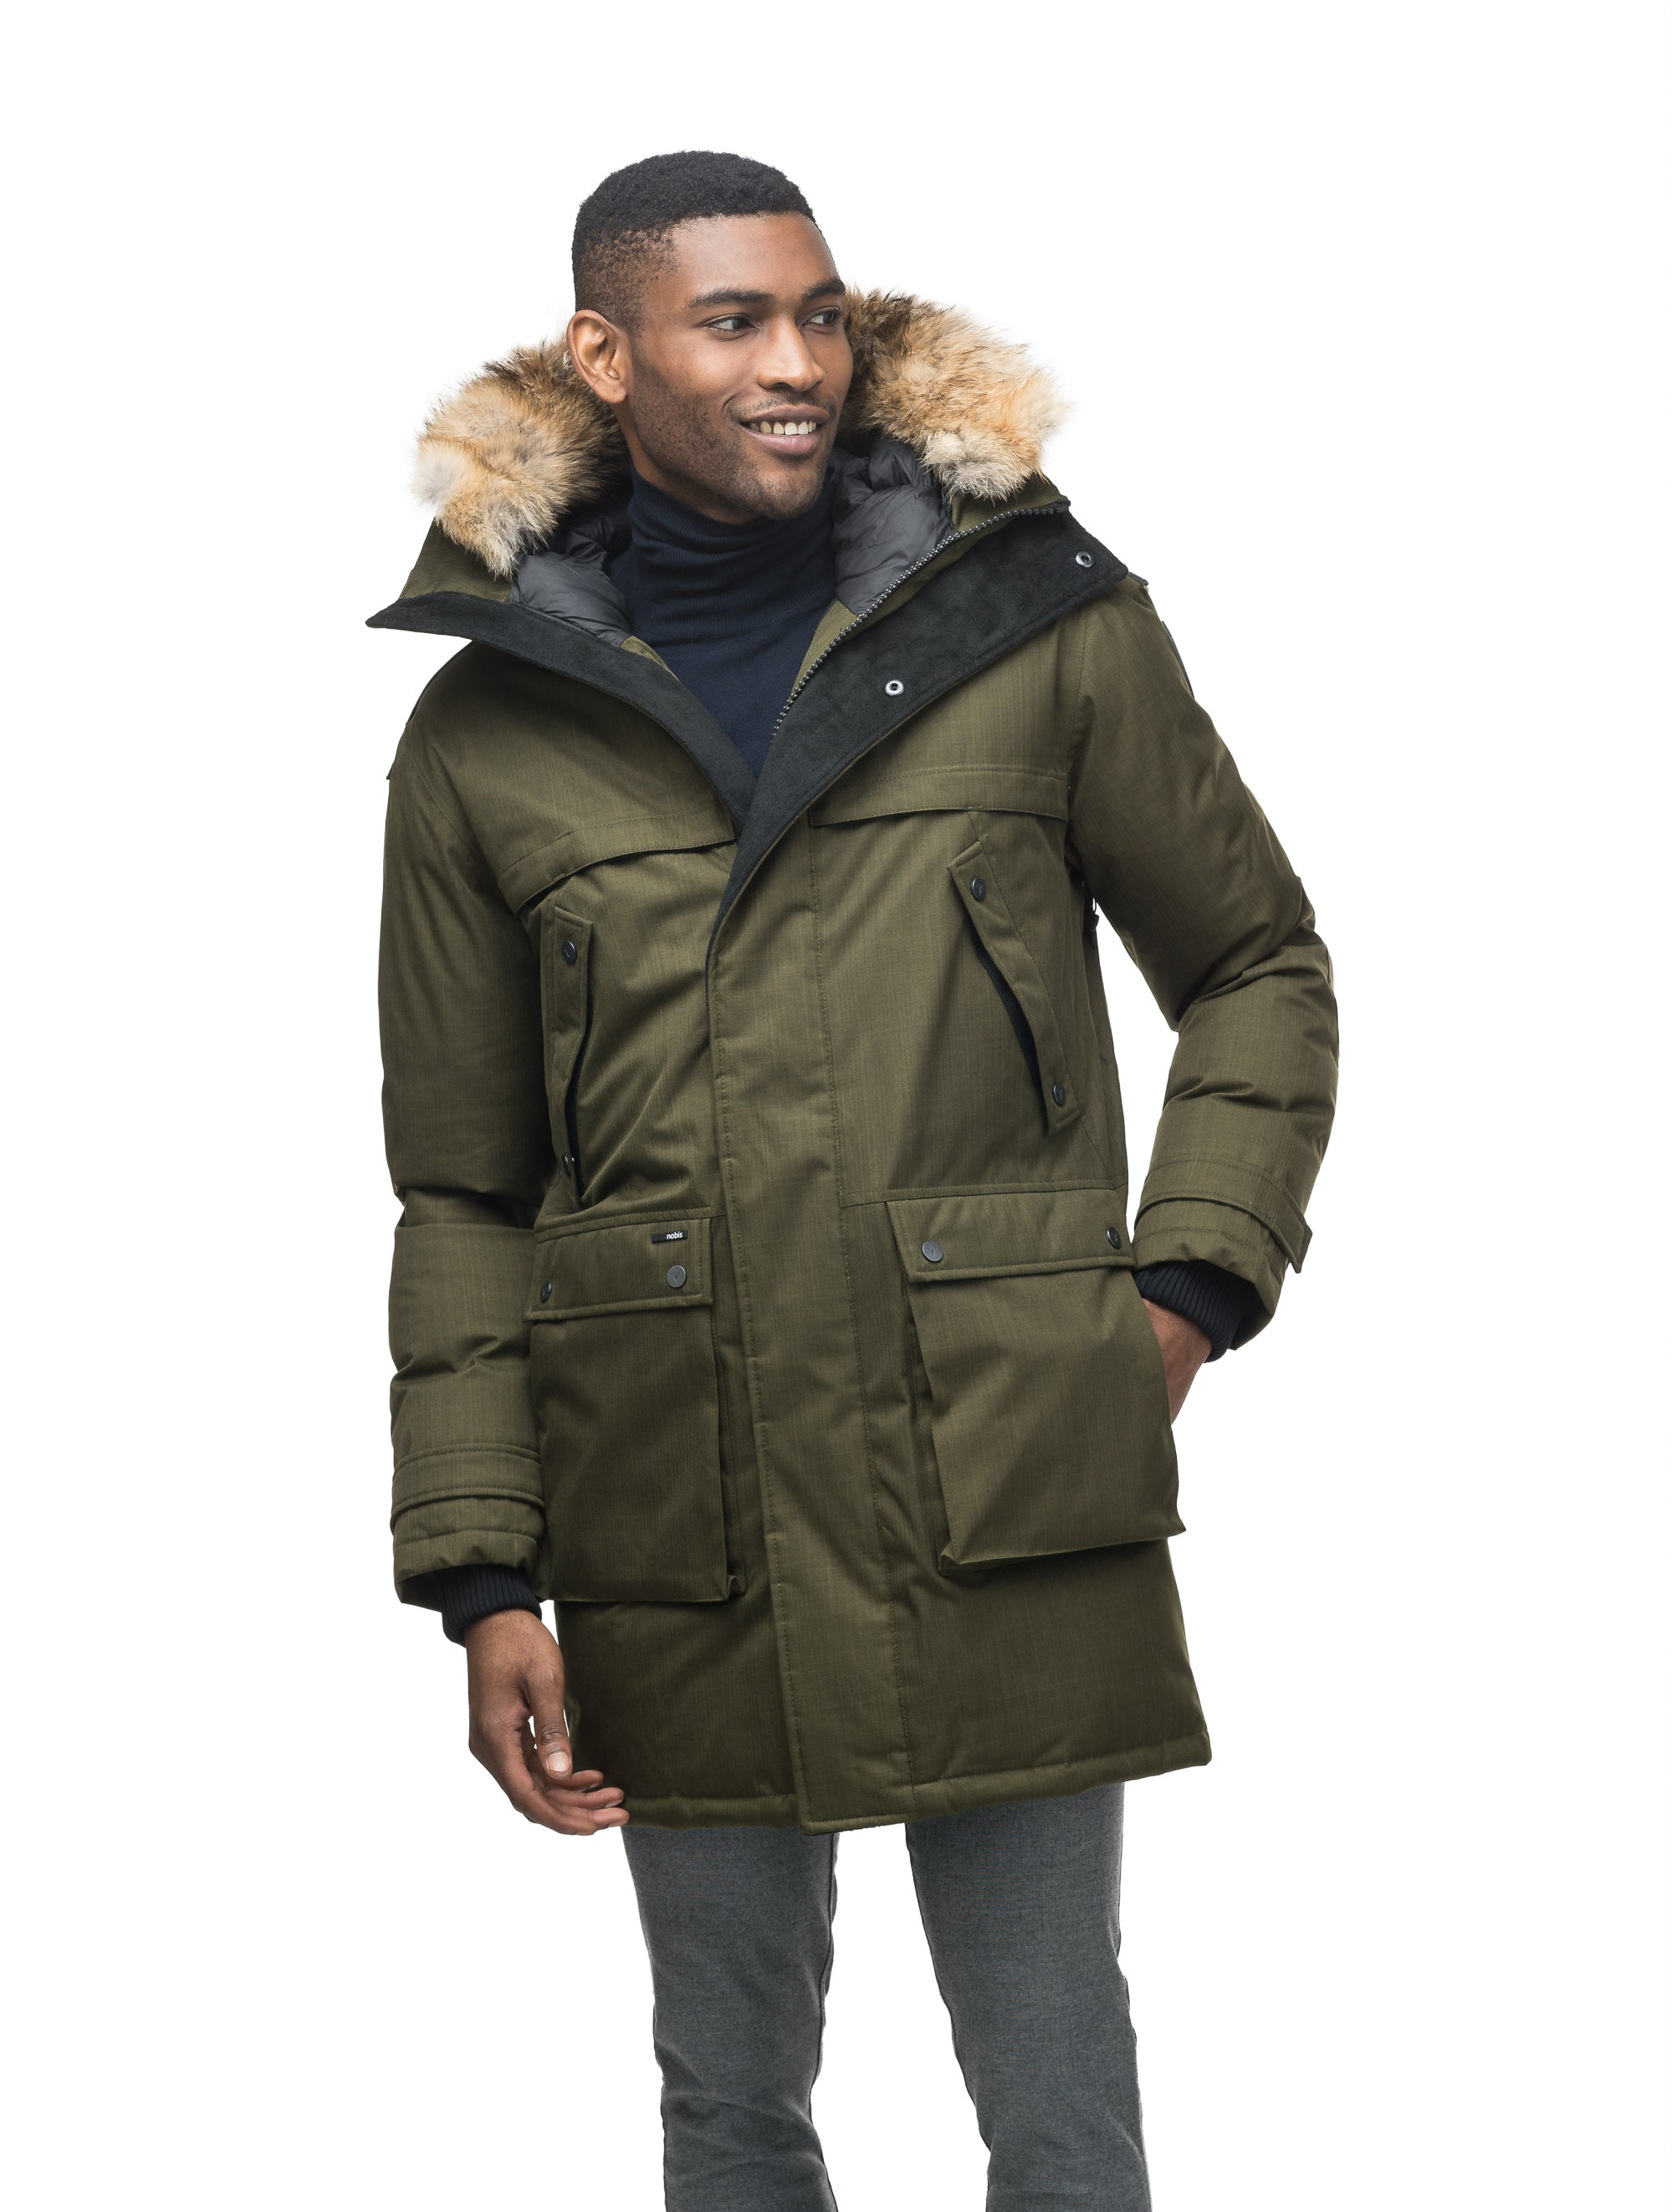 Yatesy Long Parka Jackets